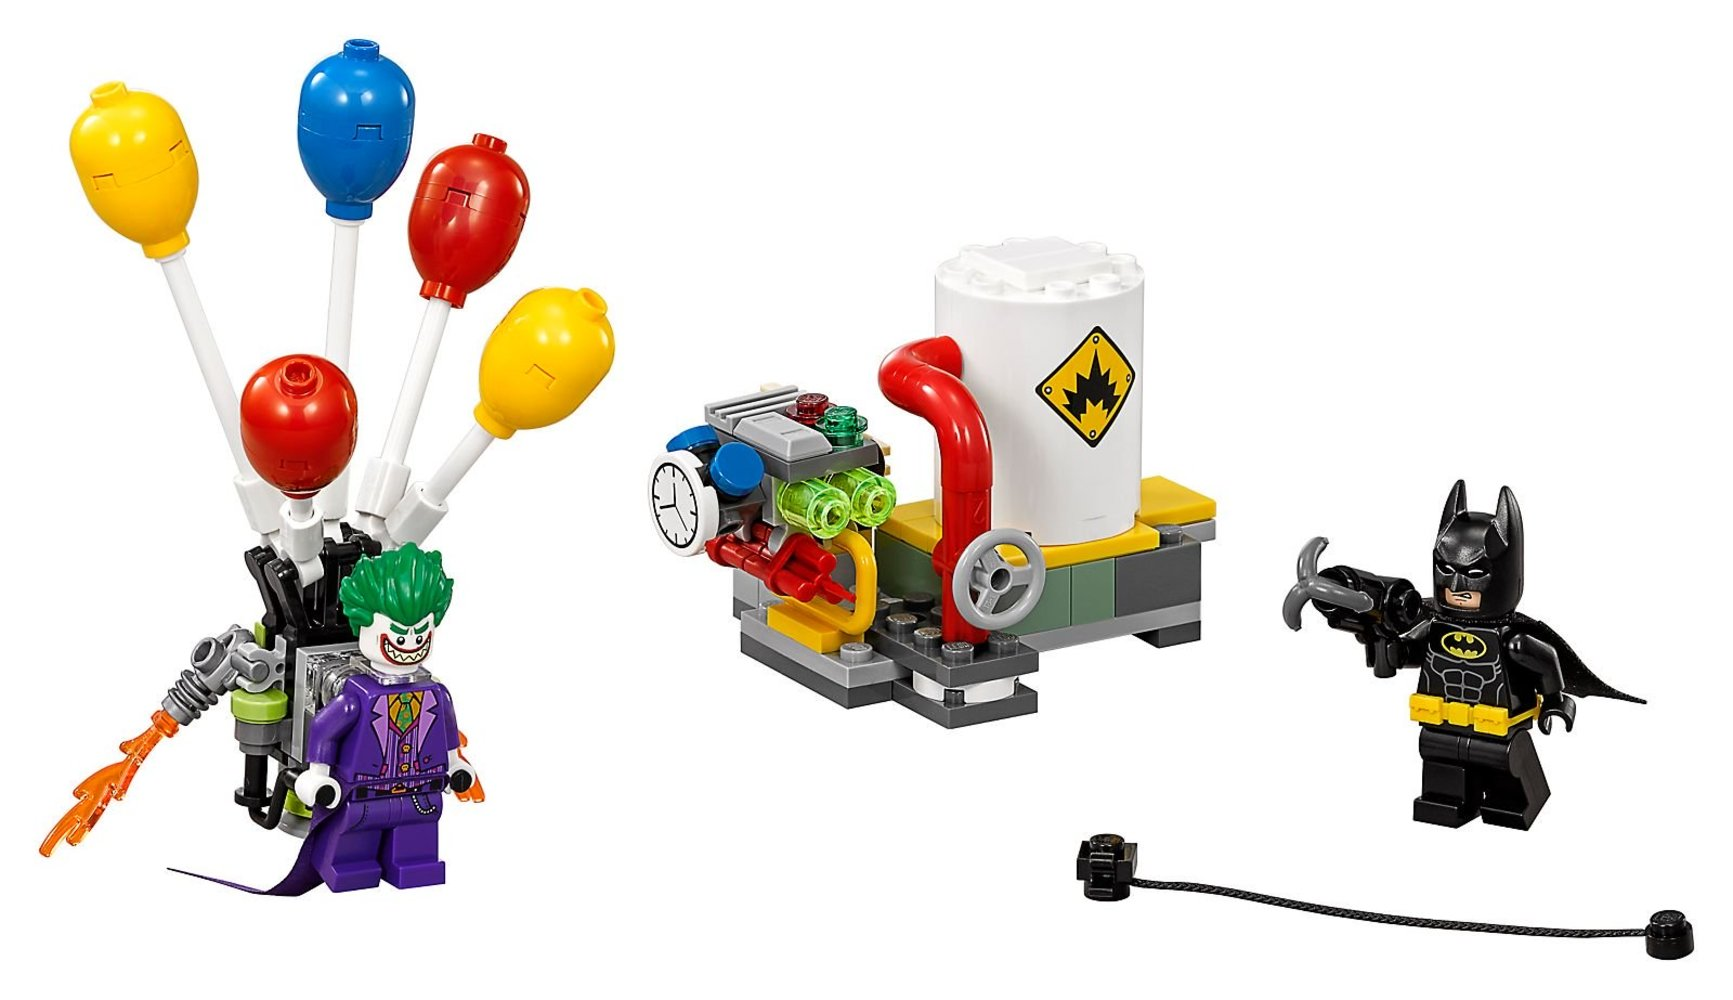 The Joker Balloon Escape